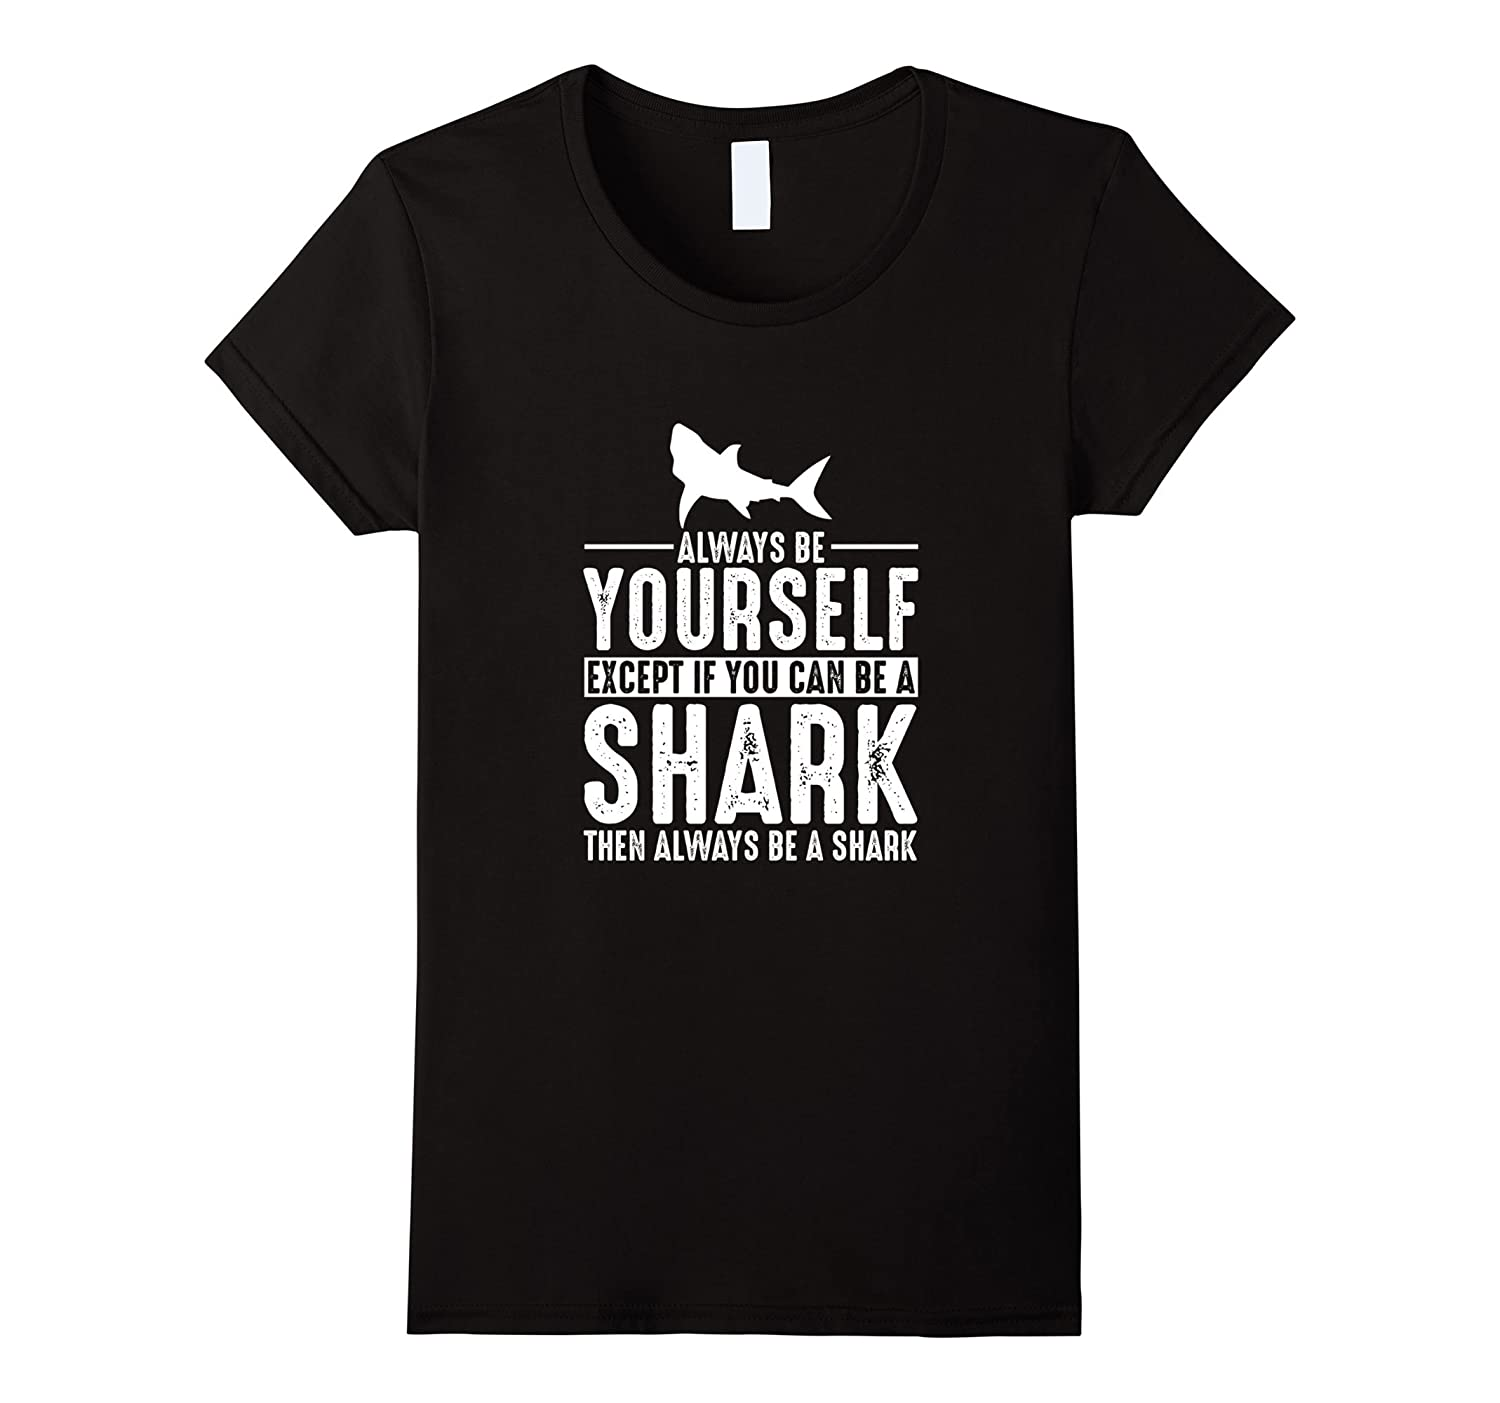 Shark – Always Be Yourself Except If You Can Be T-Shirt-Yolotee